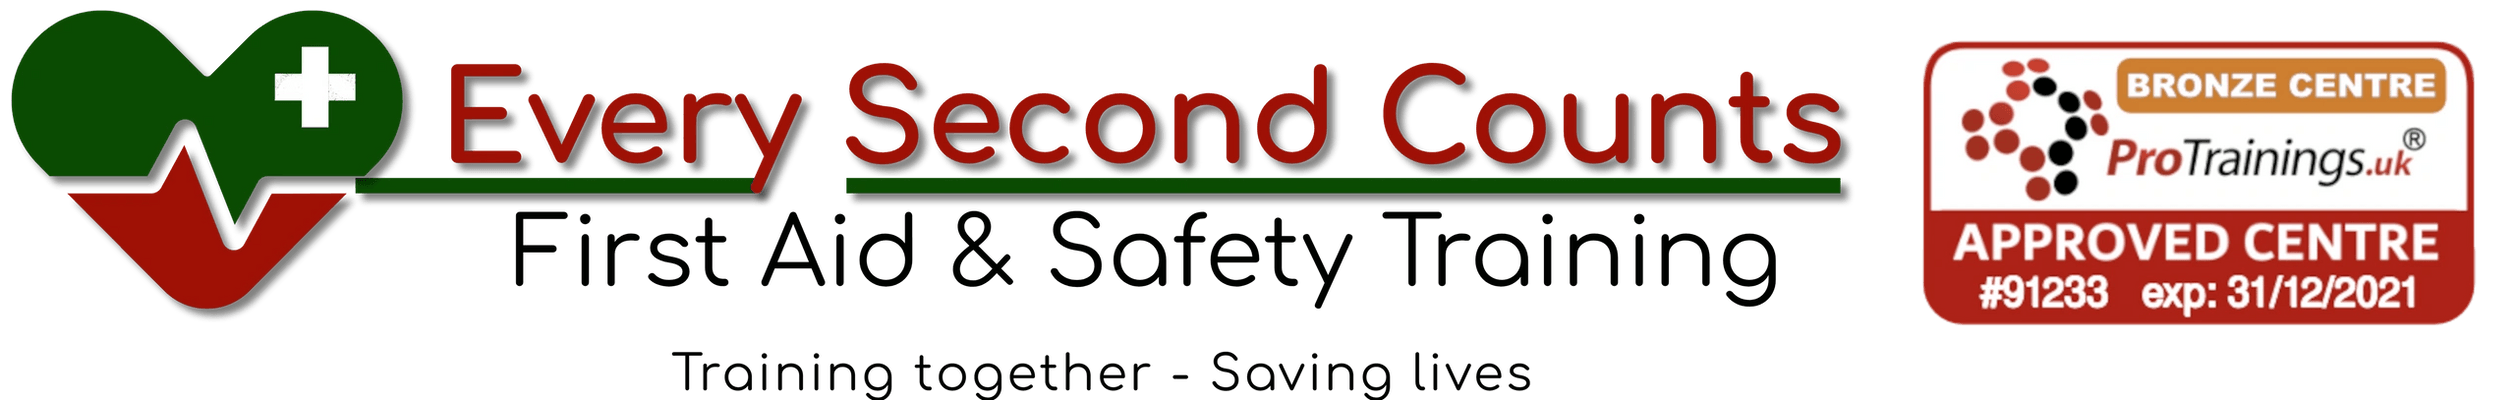 Every Second Counts First Aid & Safety Training